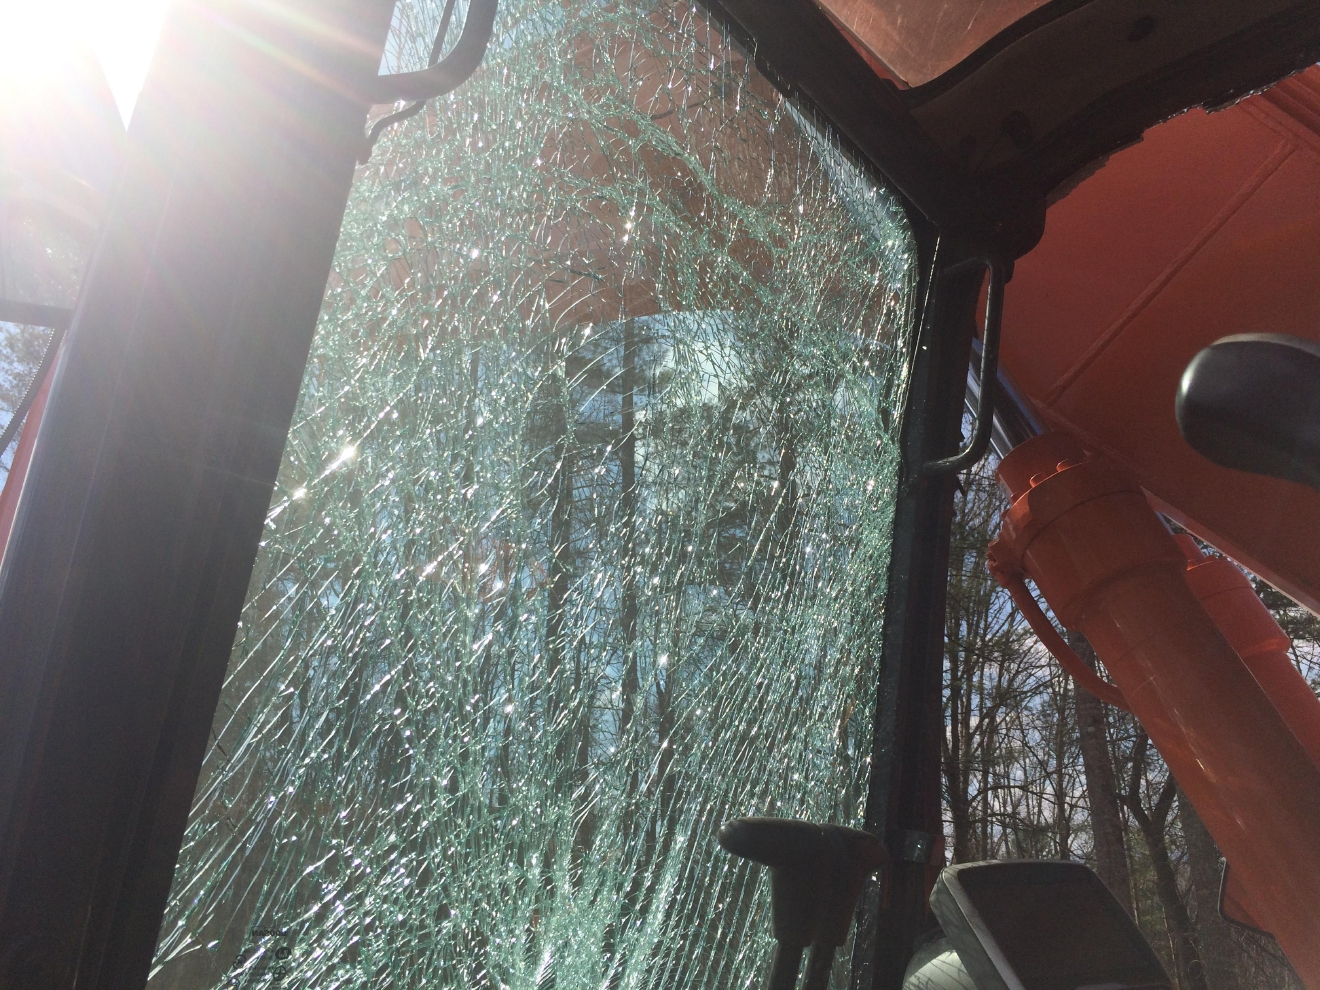 Shattered glass in track hoe. Photo credit WLOS